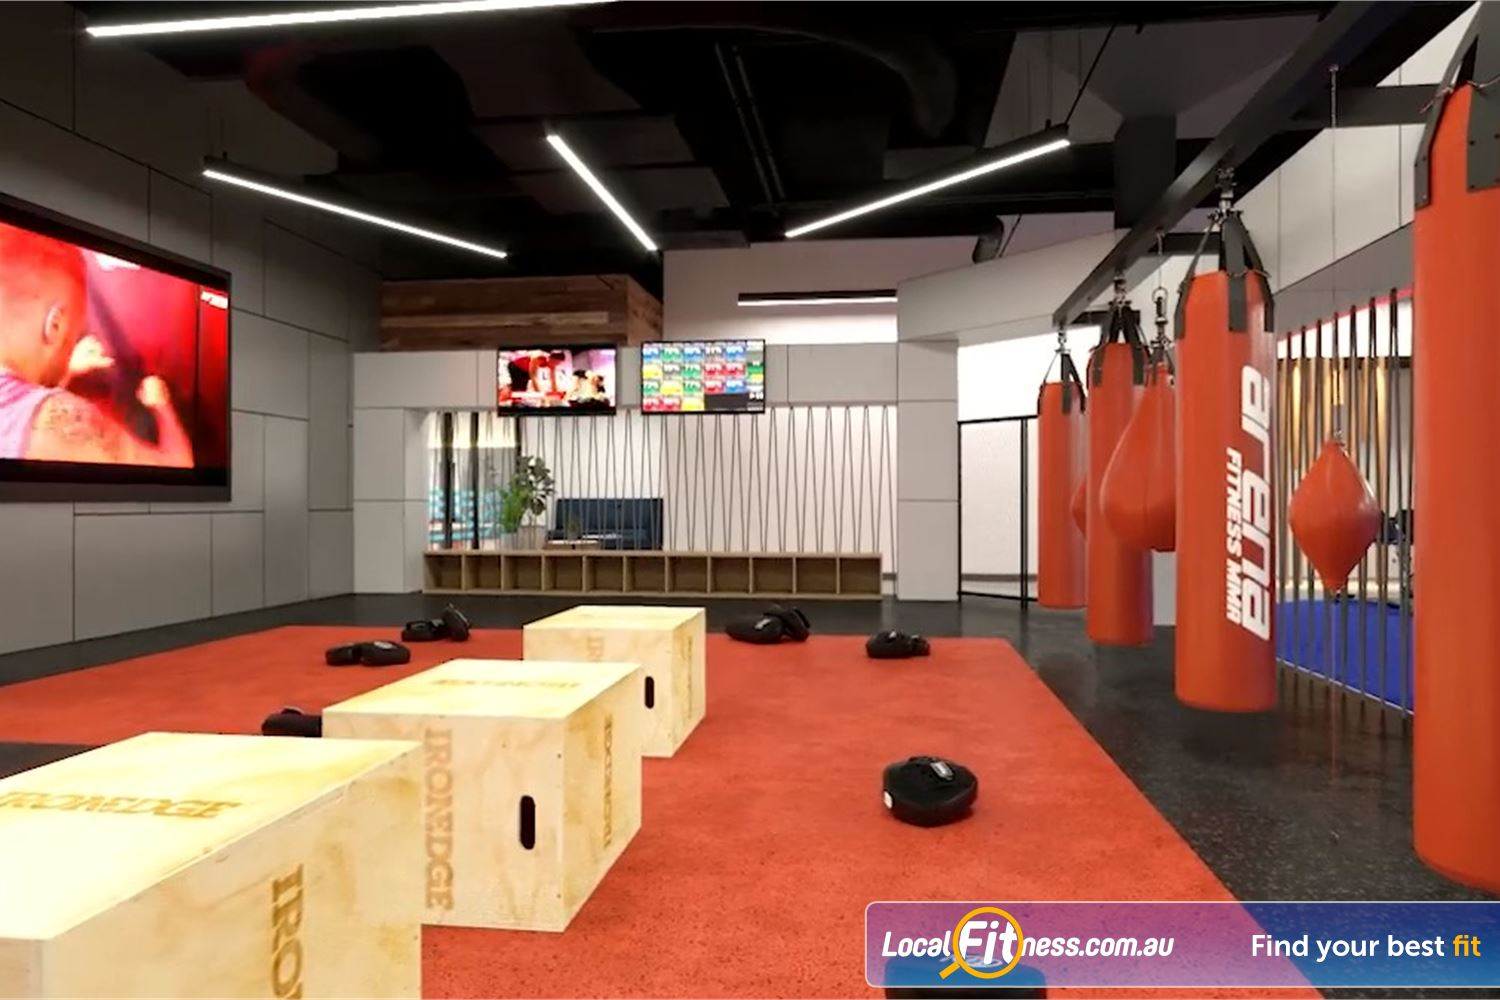 Goodlife Health Clubs Toowoomba Toowoomba Arena Fitness MMA - classes inspired by MMA and Boxing.